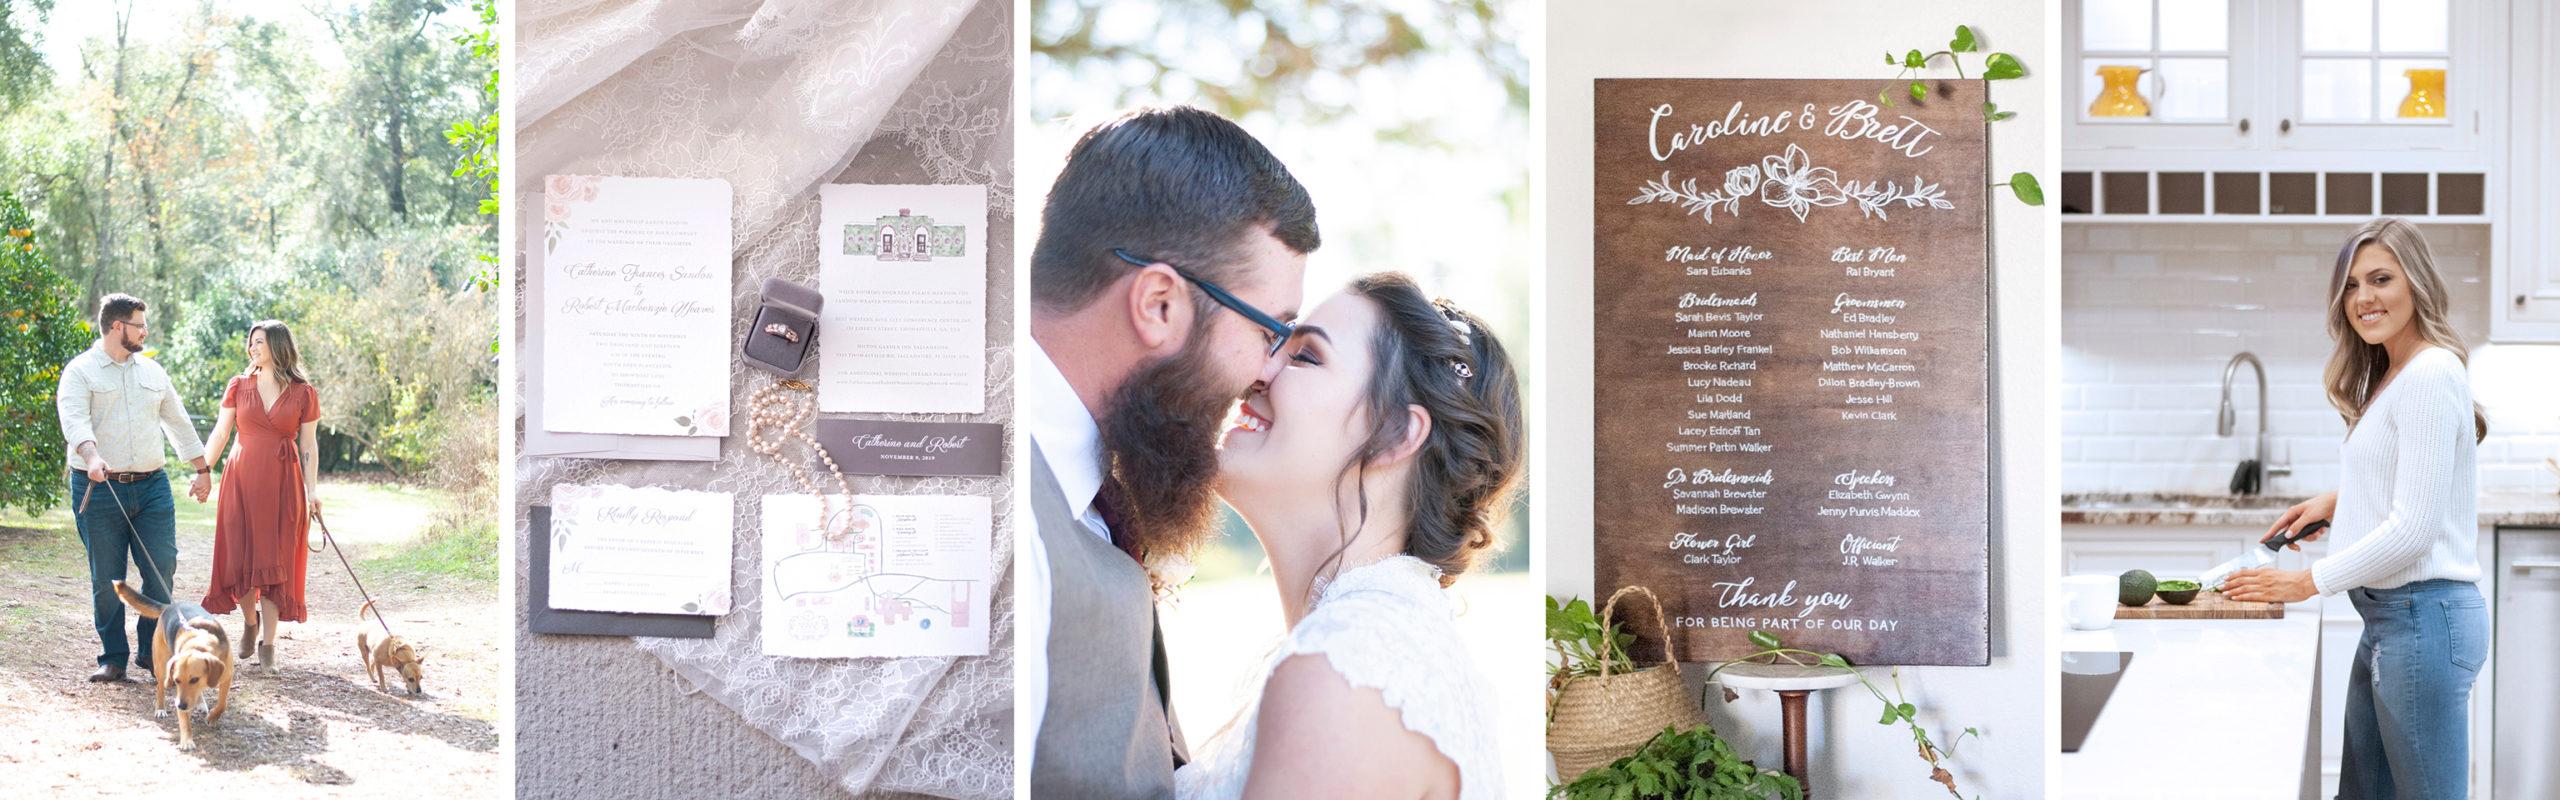 Tallahassee Wedding Photographer and Tallahassee Wedding Invitations